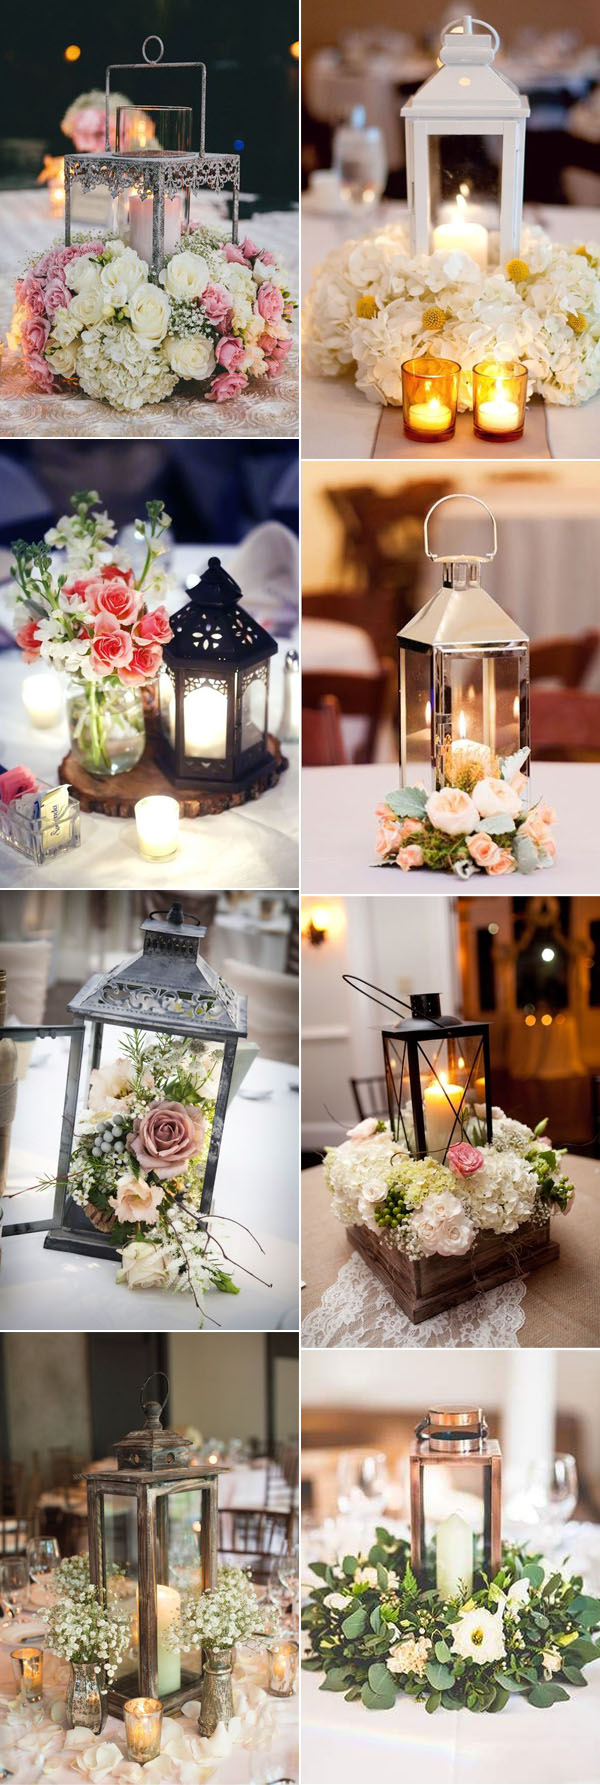 Decorative Lanterns For Weddings 32 Stunning Wedding Centerpieces Ideas Elegantweddinginvites Blog